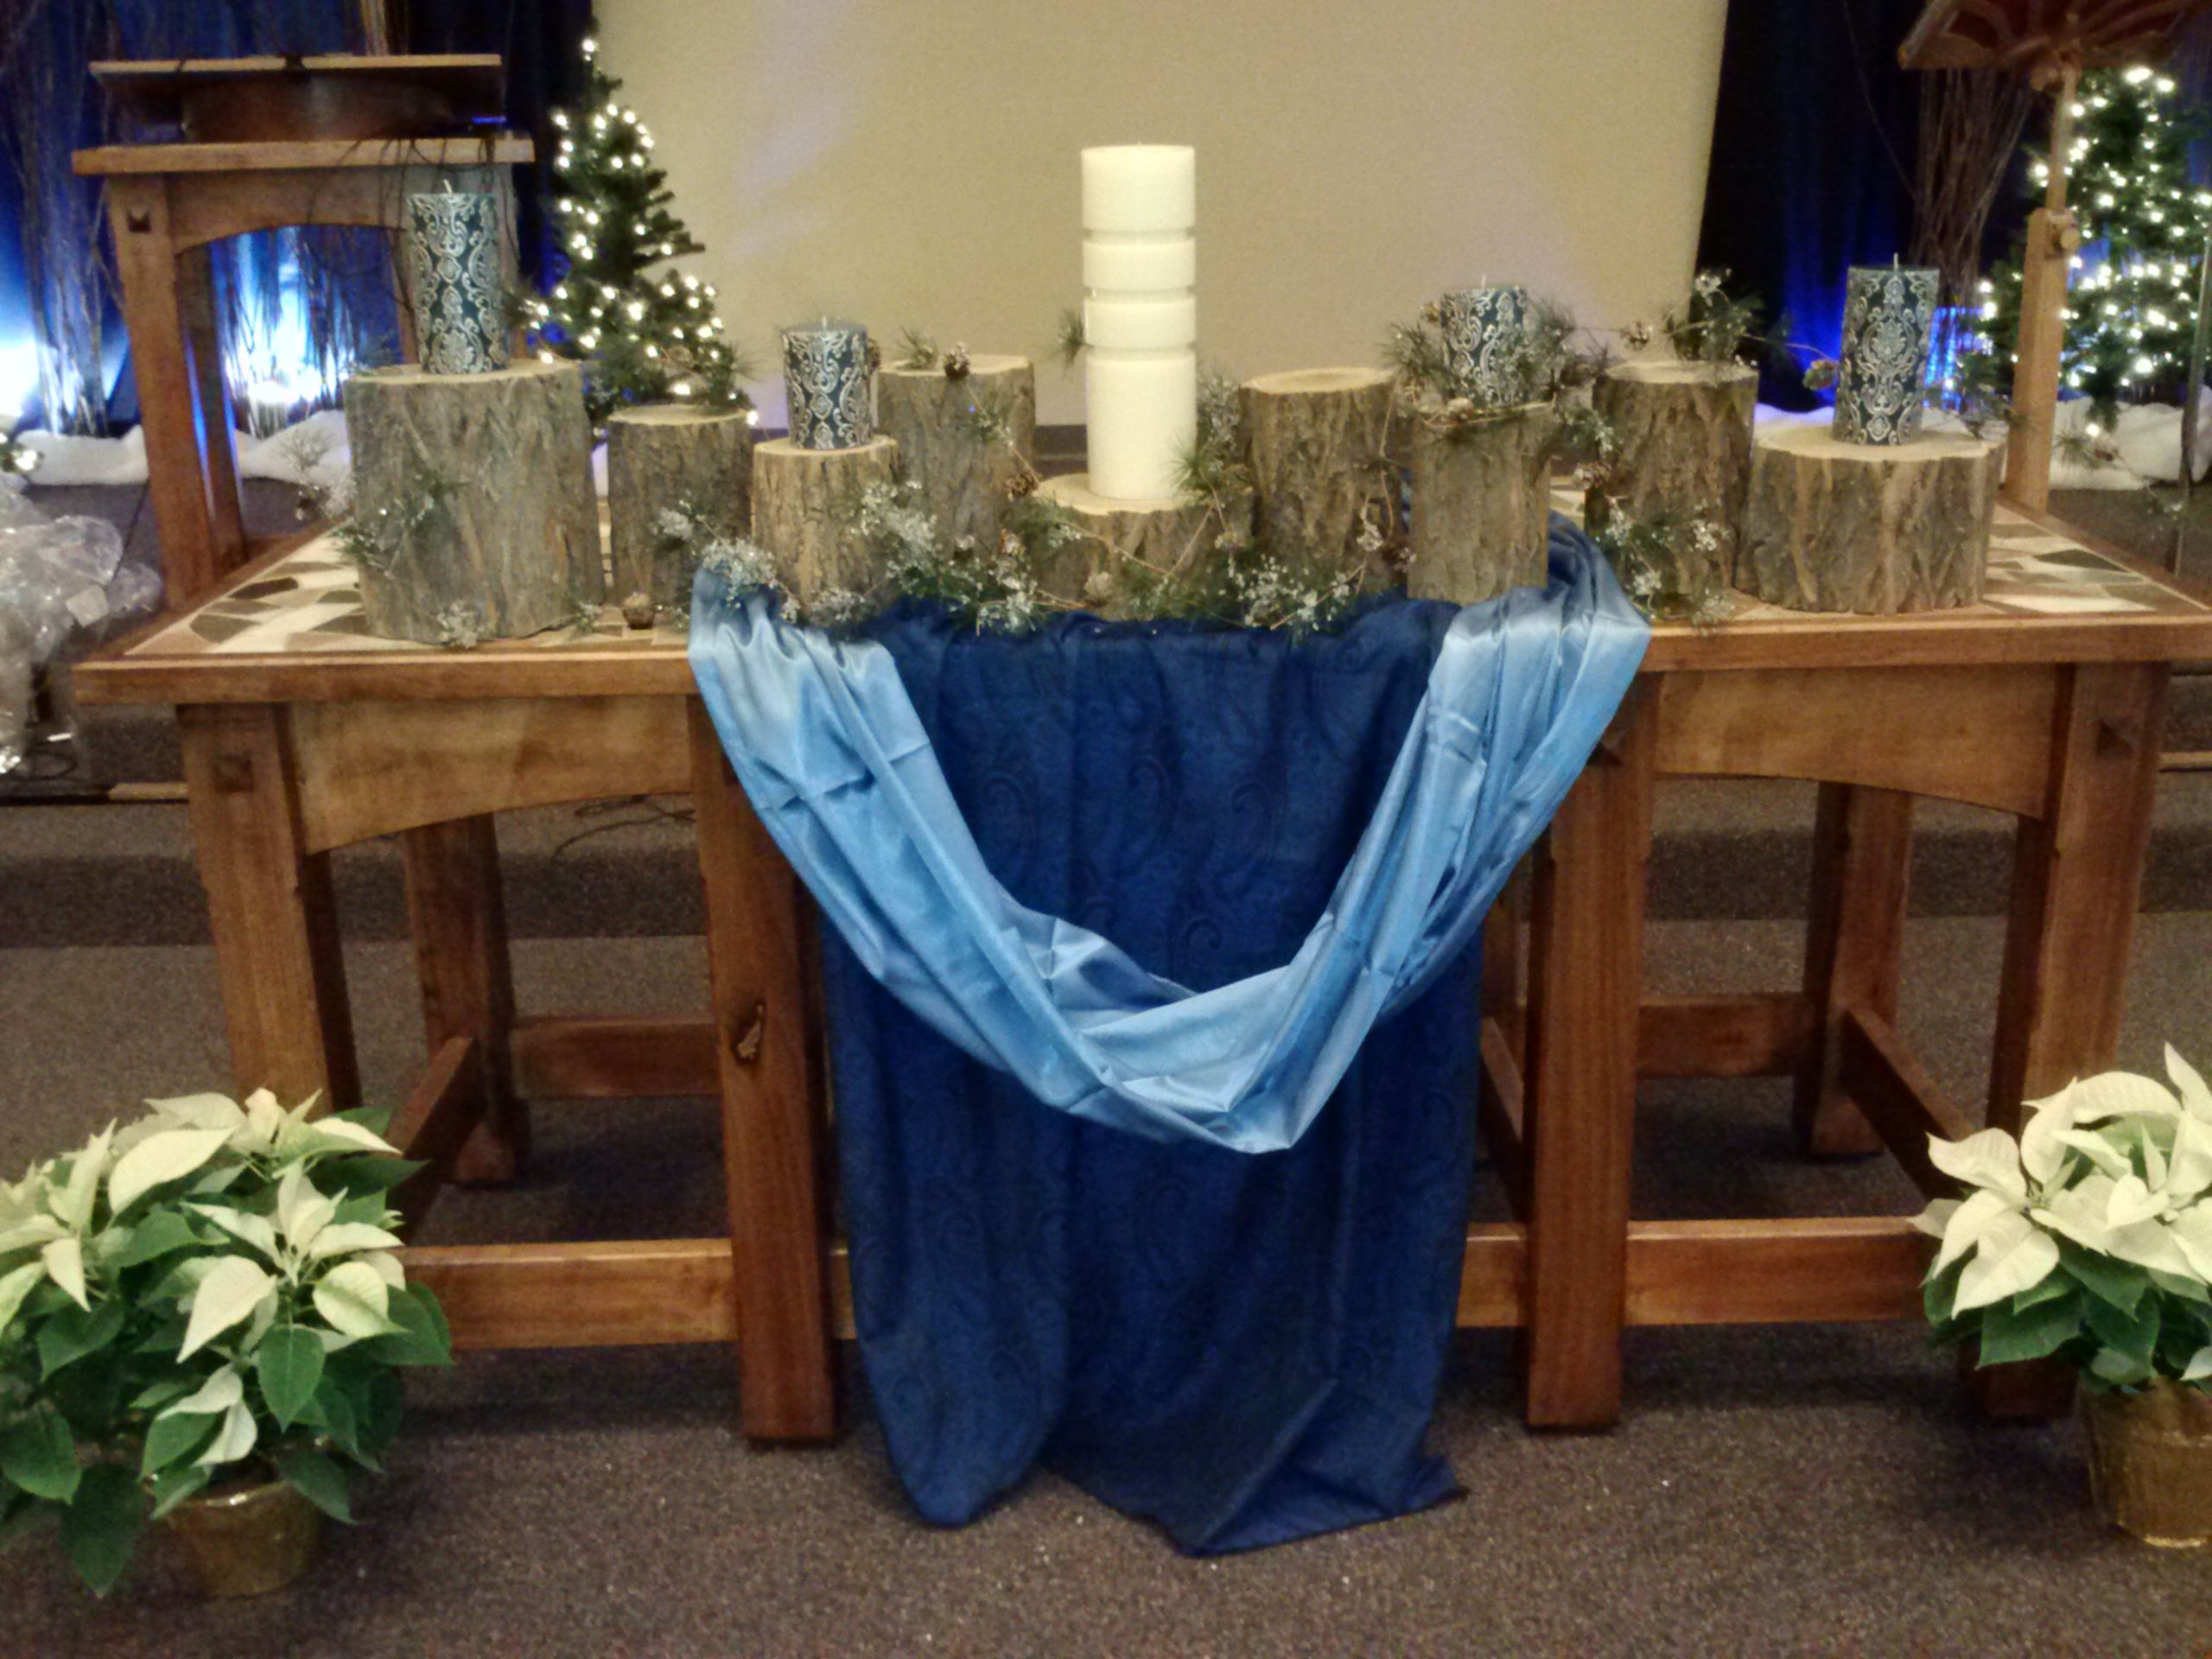 log rounds on communion table as an alternative advent wreath. would